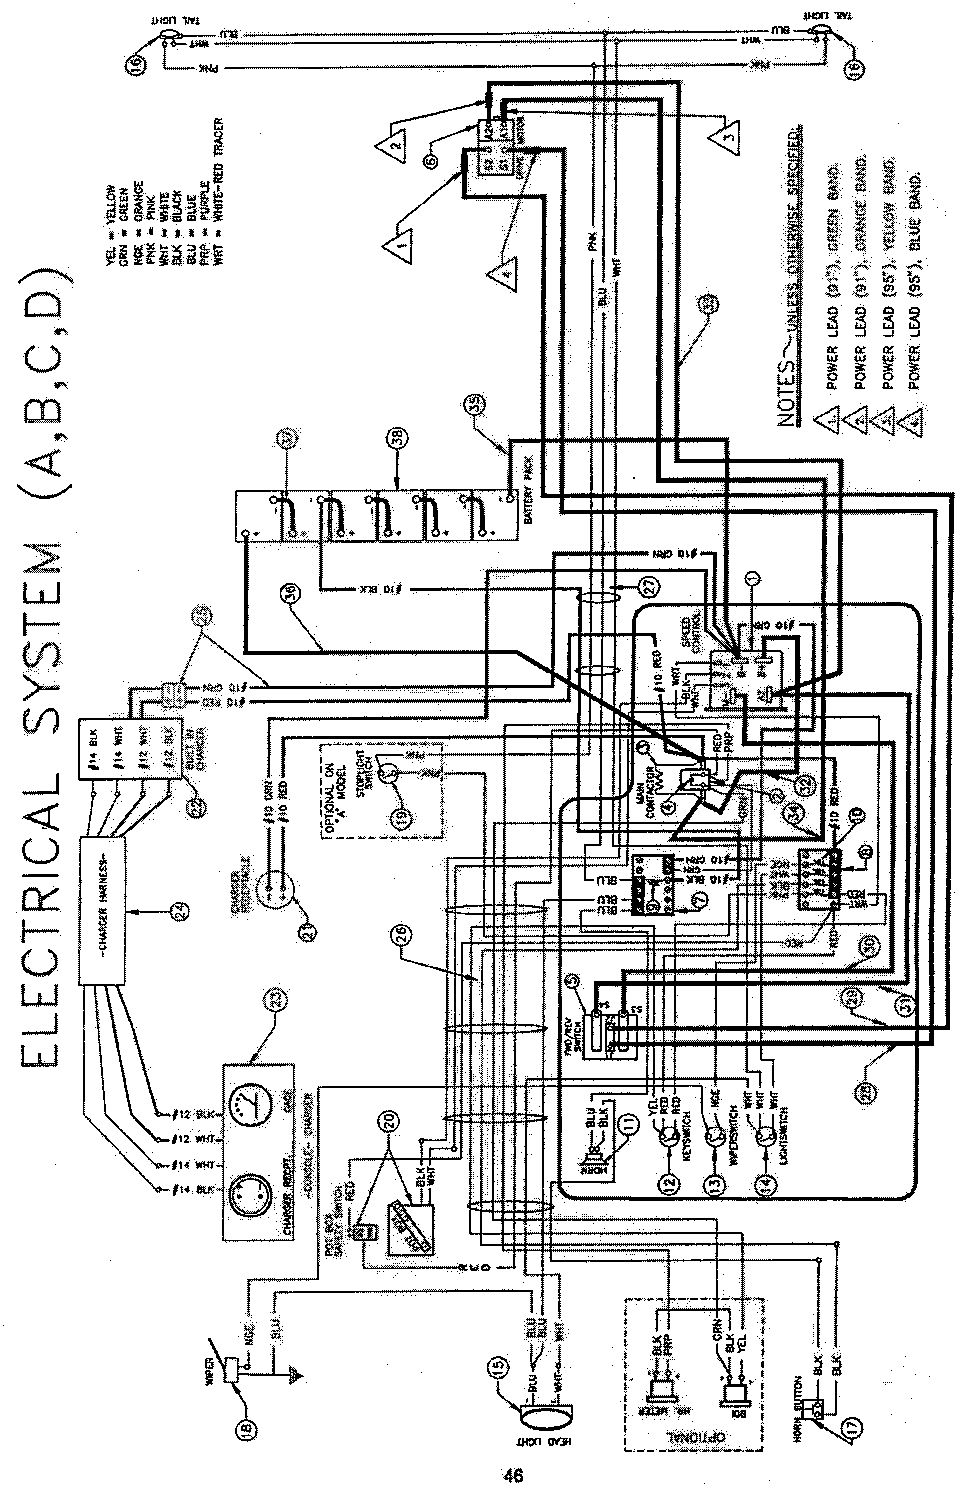 1992 club car wiring diagram 1992 image wiring diagram club car wiring diagram 48v images on 1992 club car wiring diagram